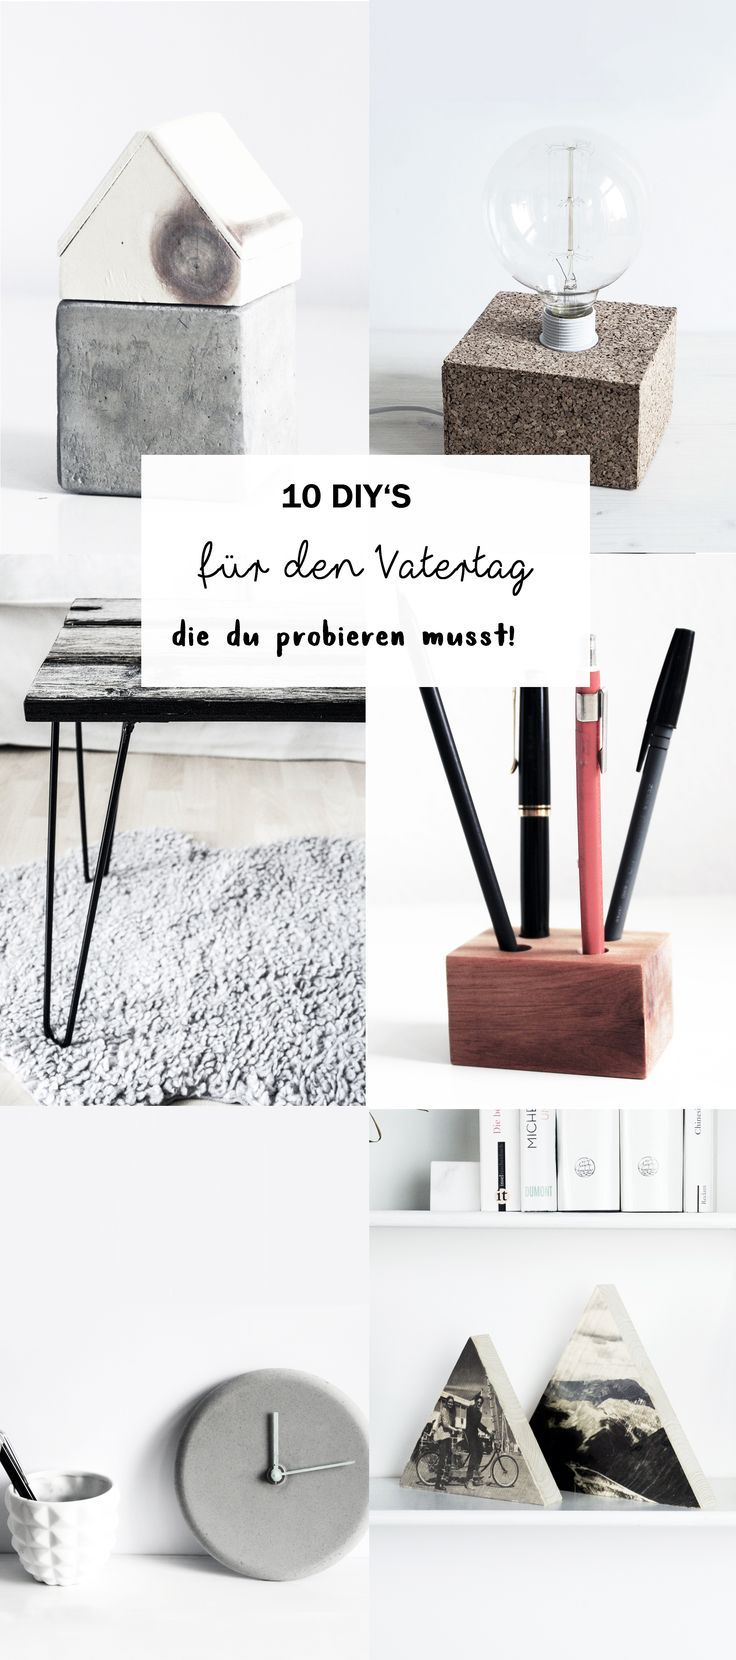 191 best images about diy geschenkideen on pinterest. Black Bedroom Furniture Sets. Home Design Ideas